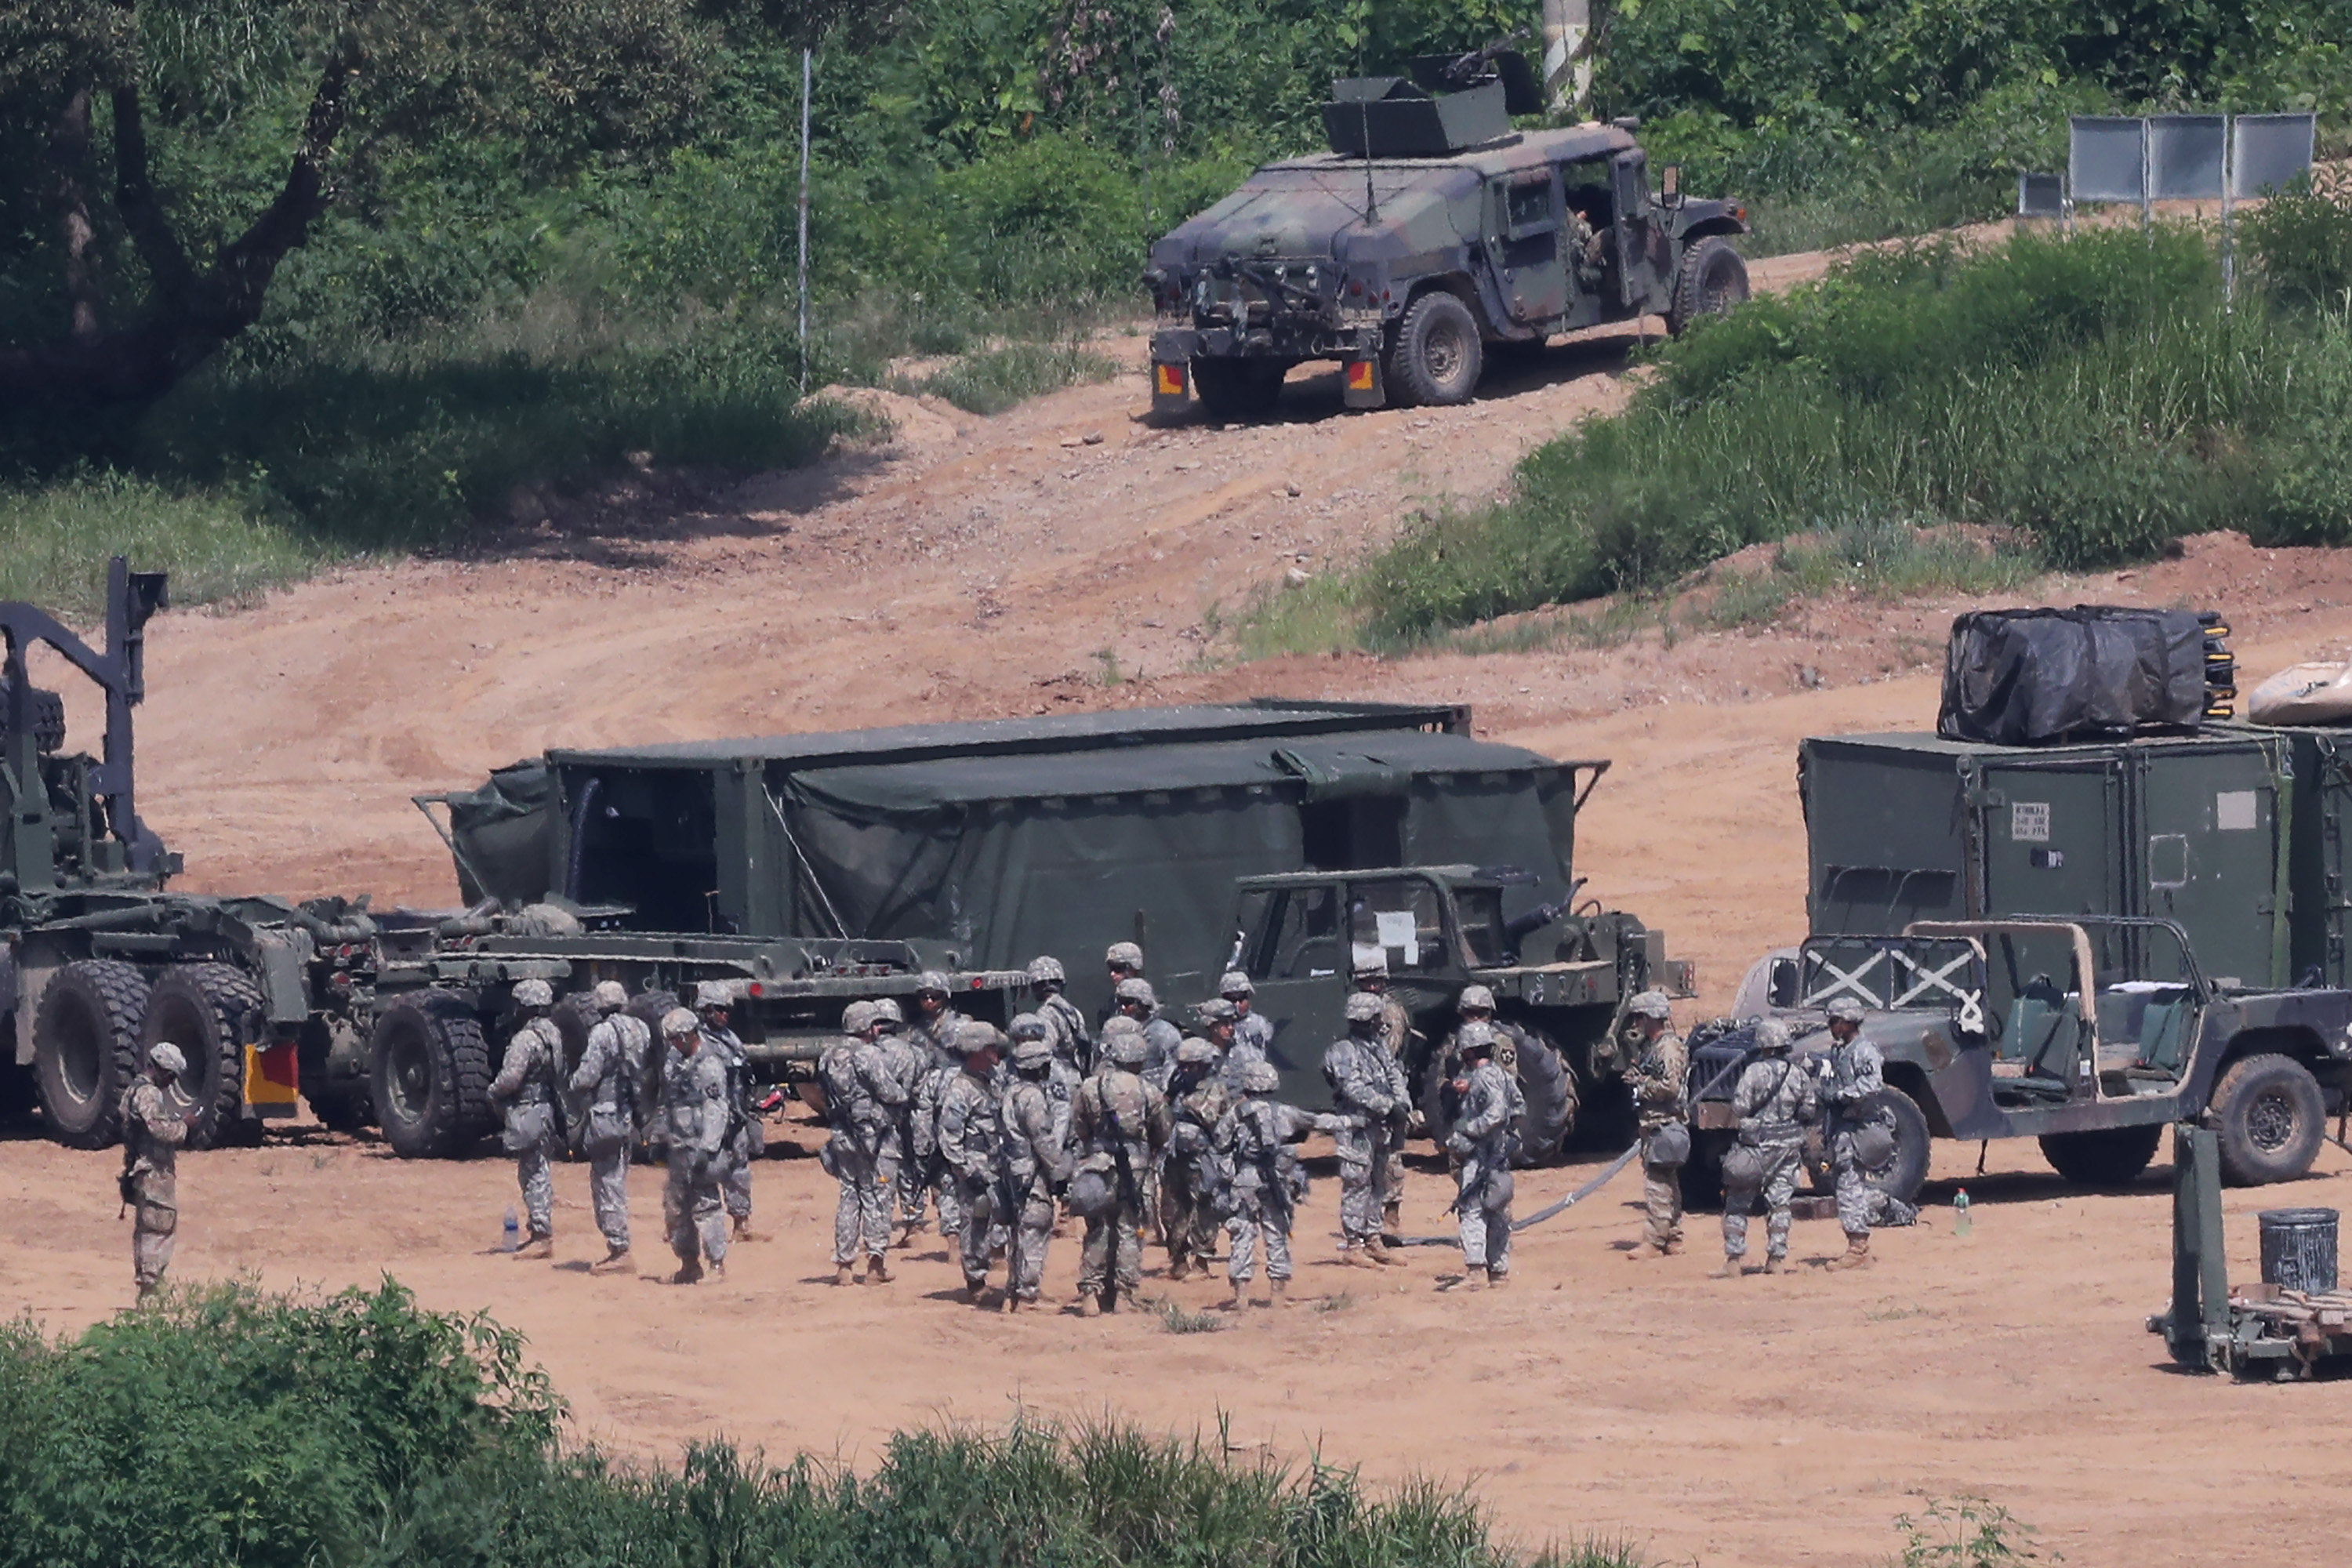 U.S. army soldiers take part in a military exercise near the demilitarized zone separating the two Koreas in Paju, South Korea